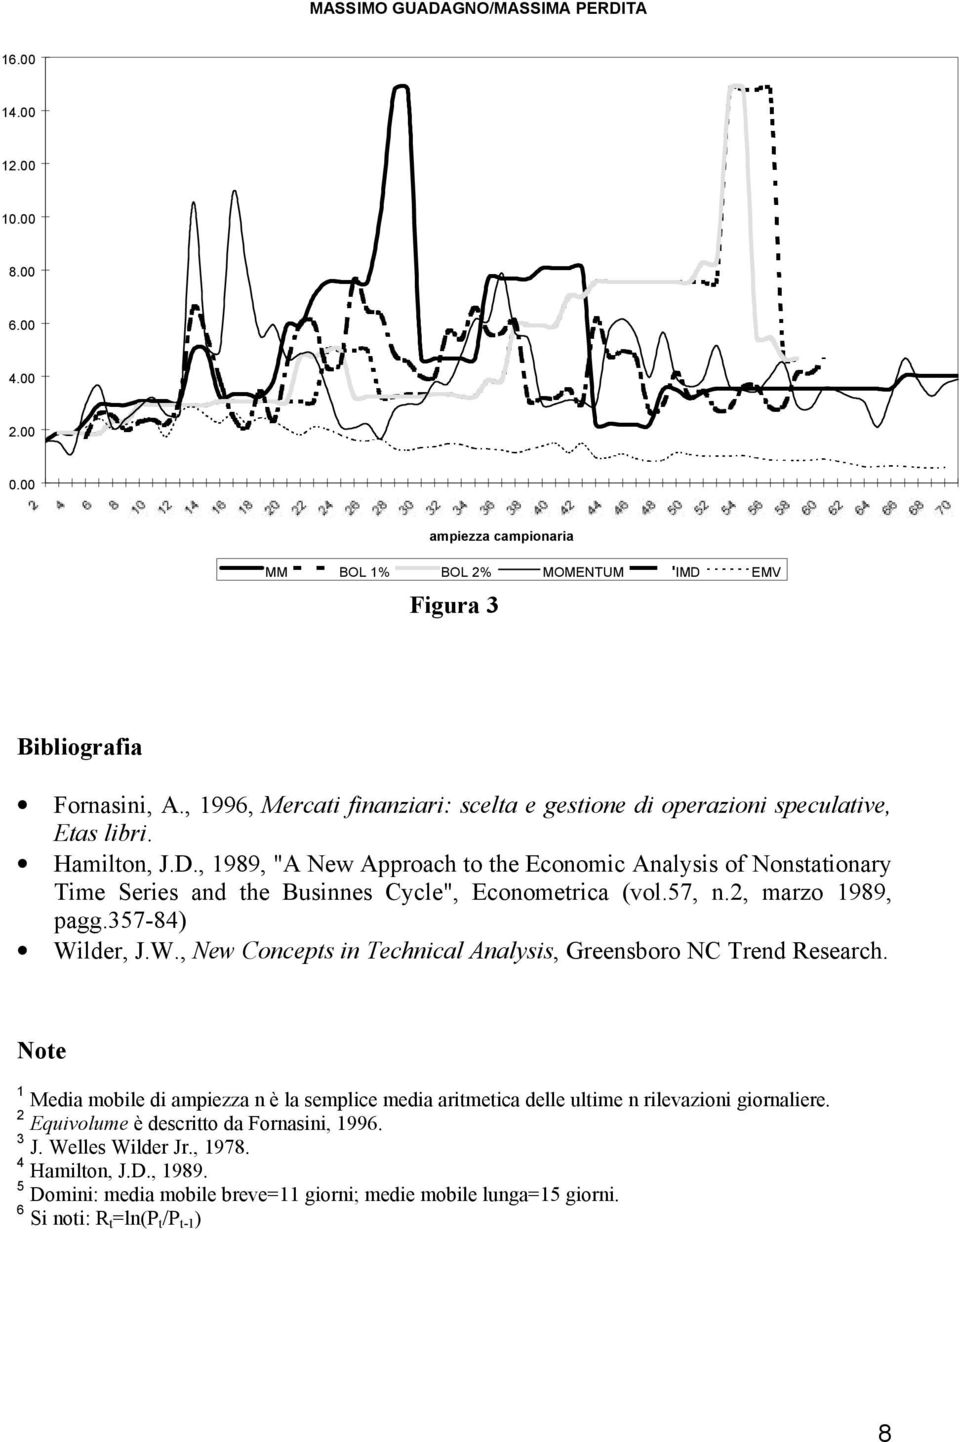 ", 1989, ""A New Approach o he Economic Analysis of Nonsaionary Time Series and he Businnes Cycle"", Economerica (vol.57, n., marzo 1989, pagg.357-84) Wi"